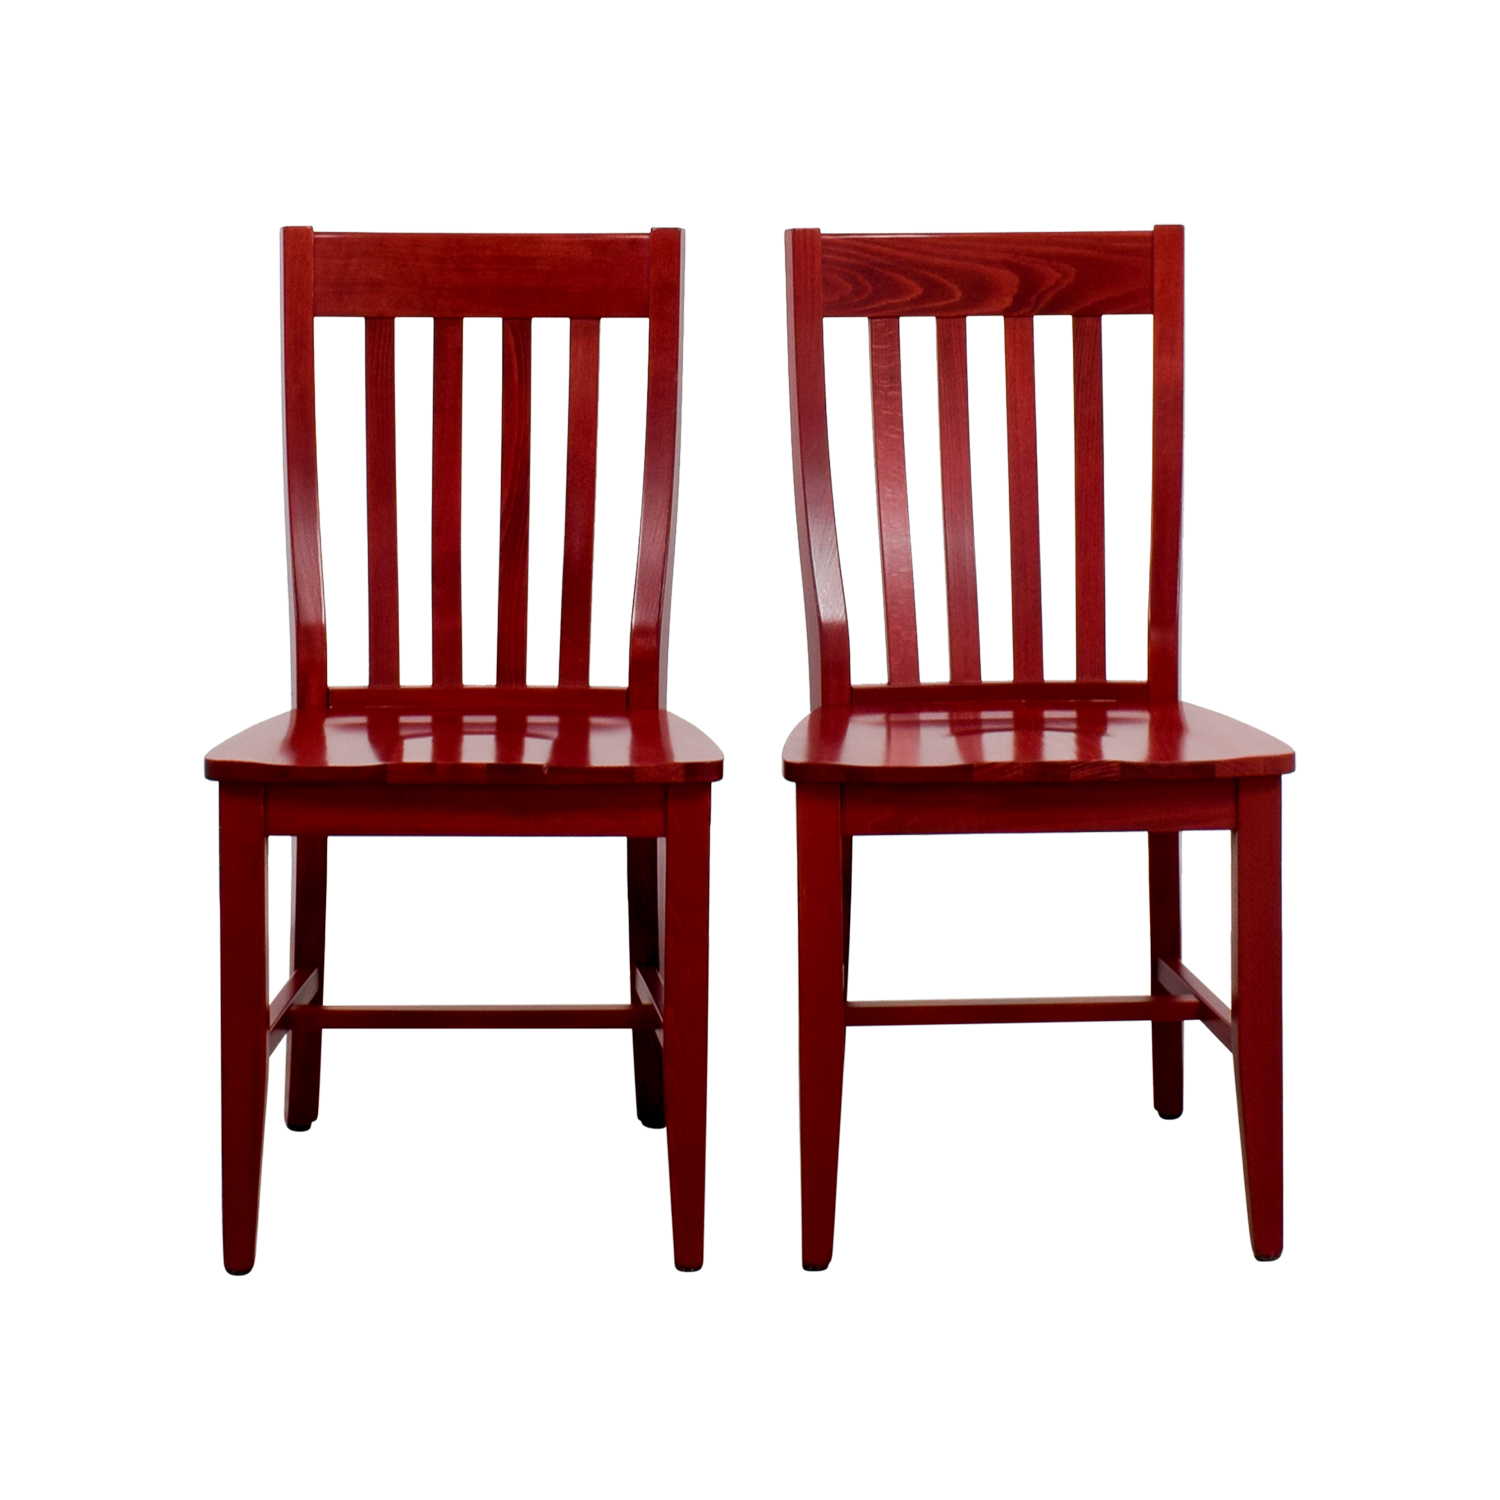 79% OFF - Pottery Barn Pottery Barn Schoolhouse Chairs / Chairs